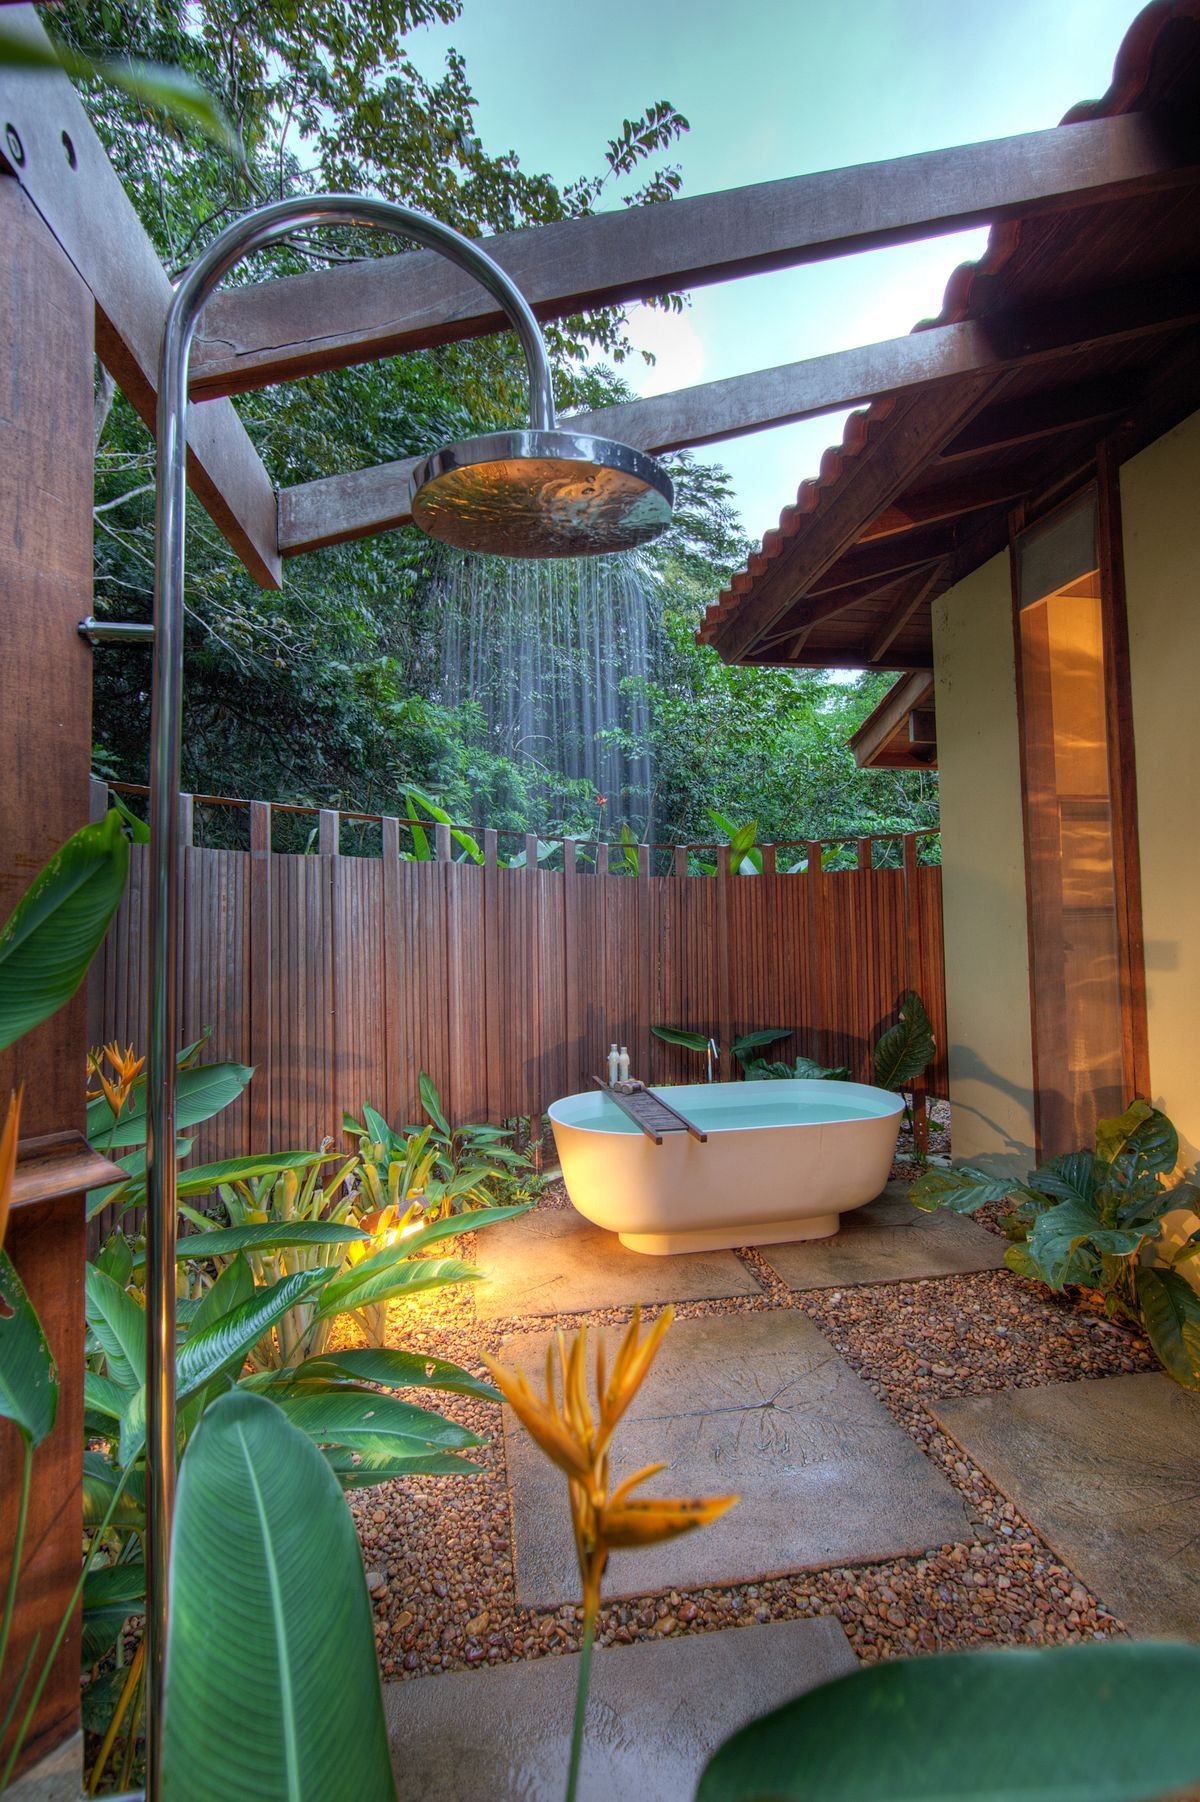 Outdoor bathroom in the middle of the jungle bathroom for Outdoor pool bathroom ideas